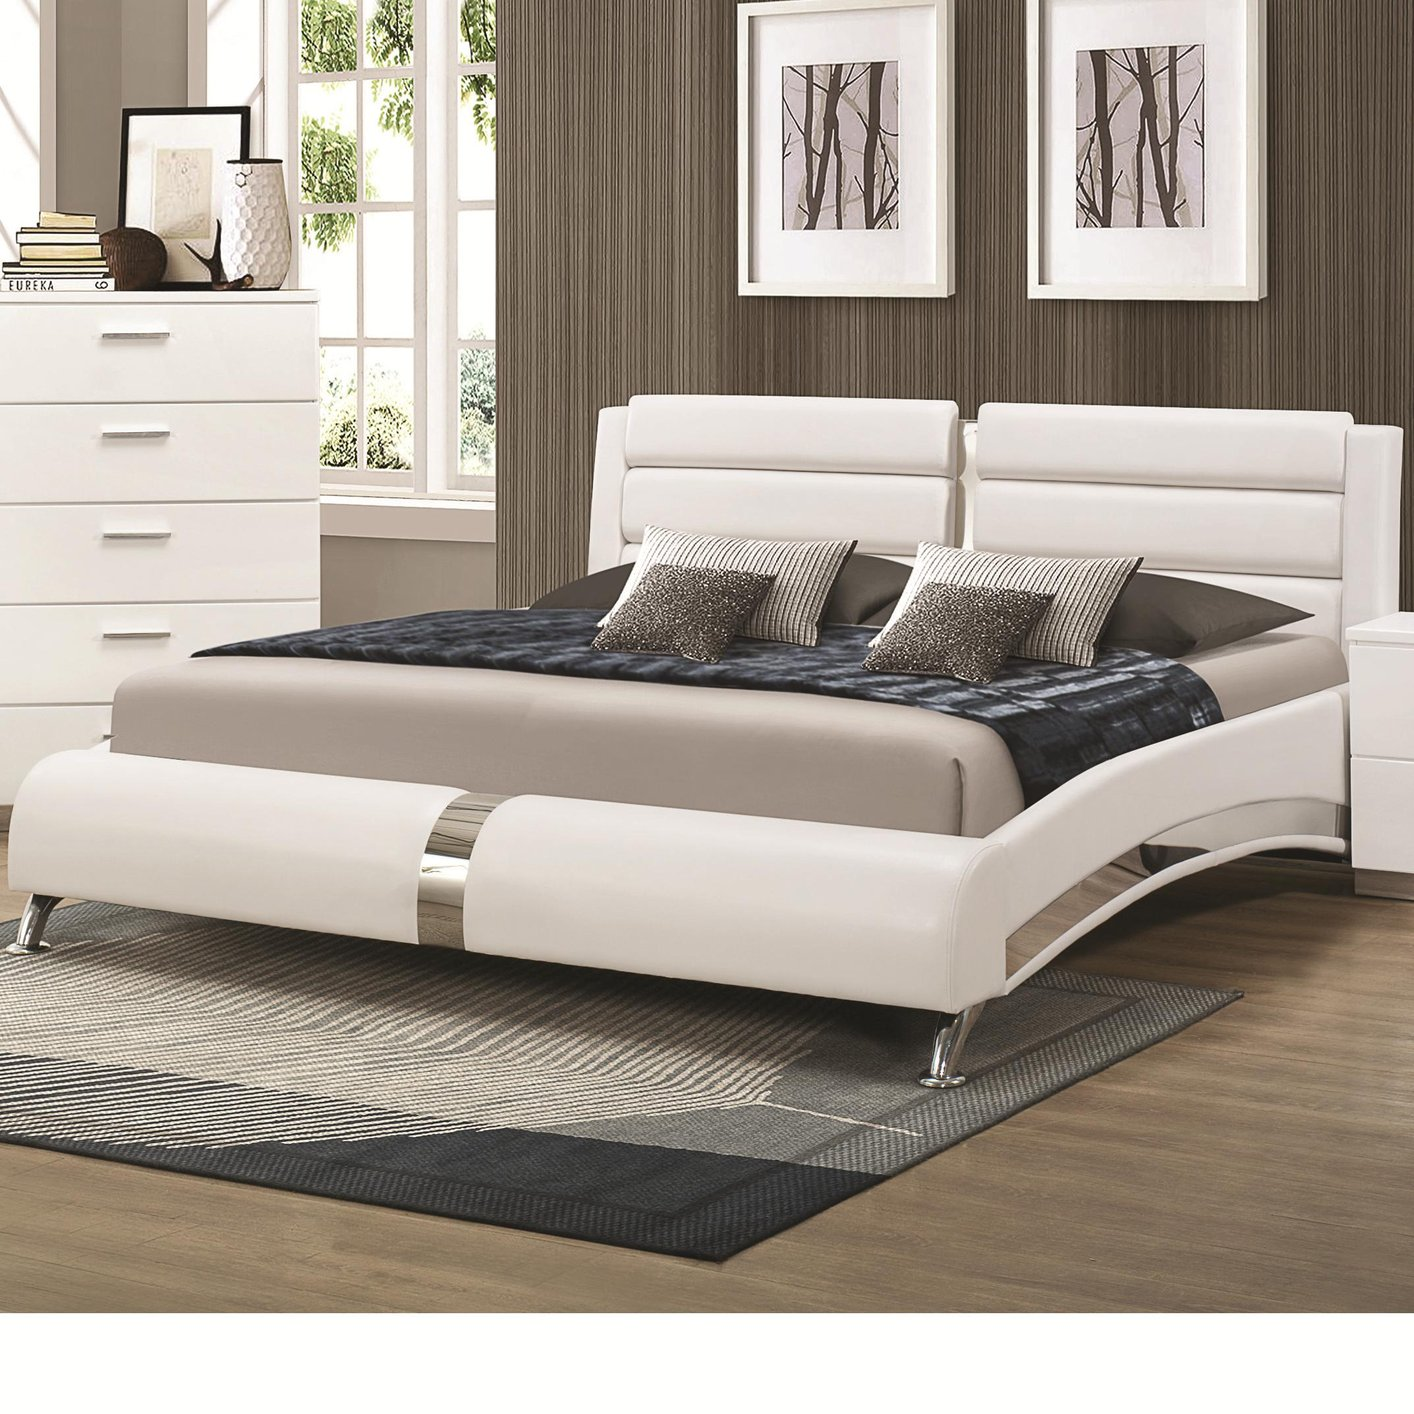 Coaster 300345kw Silver California King Size Wood Bed: types of king beds